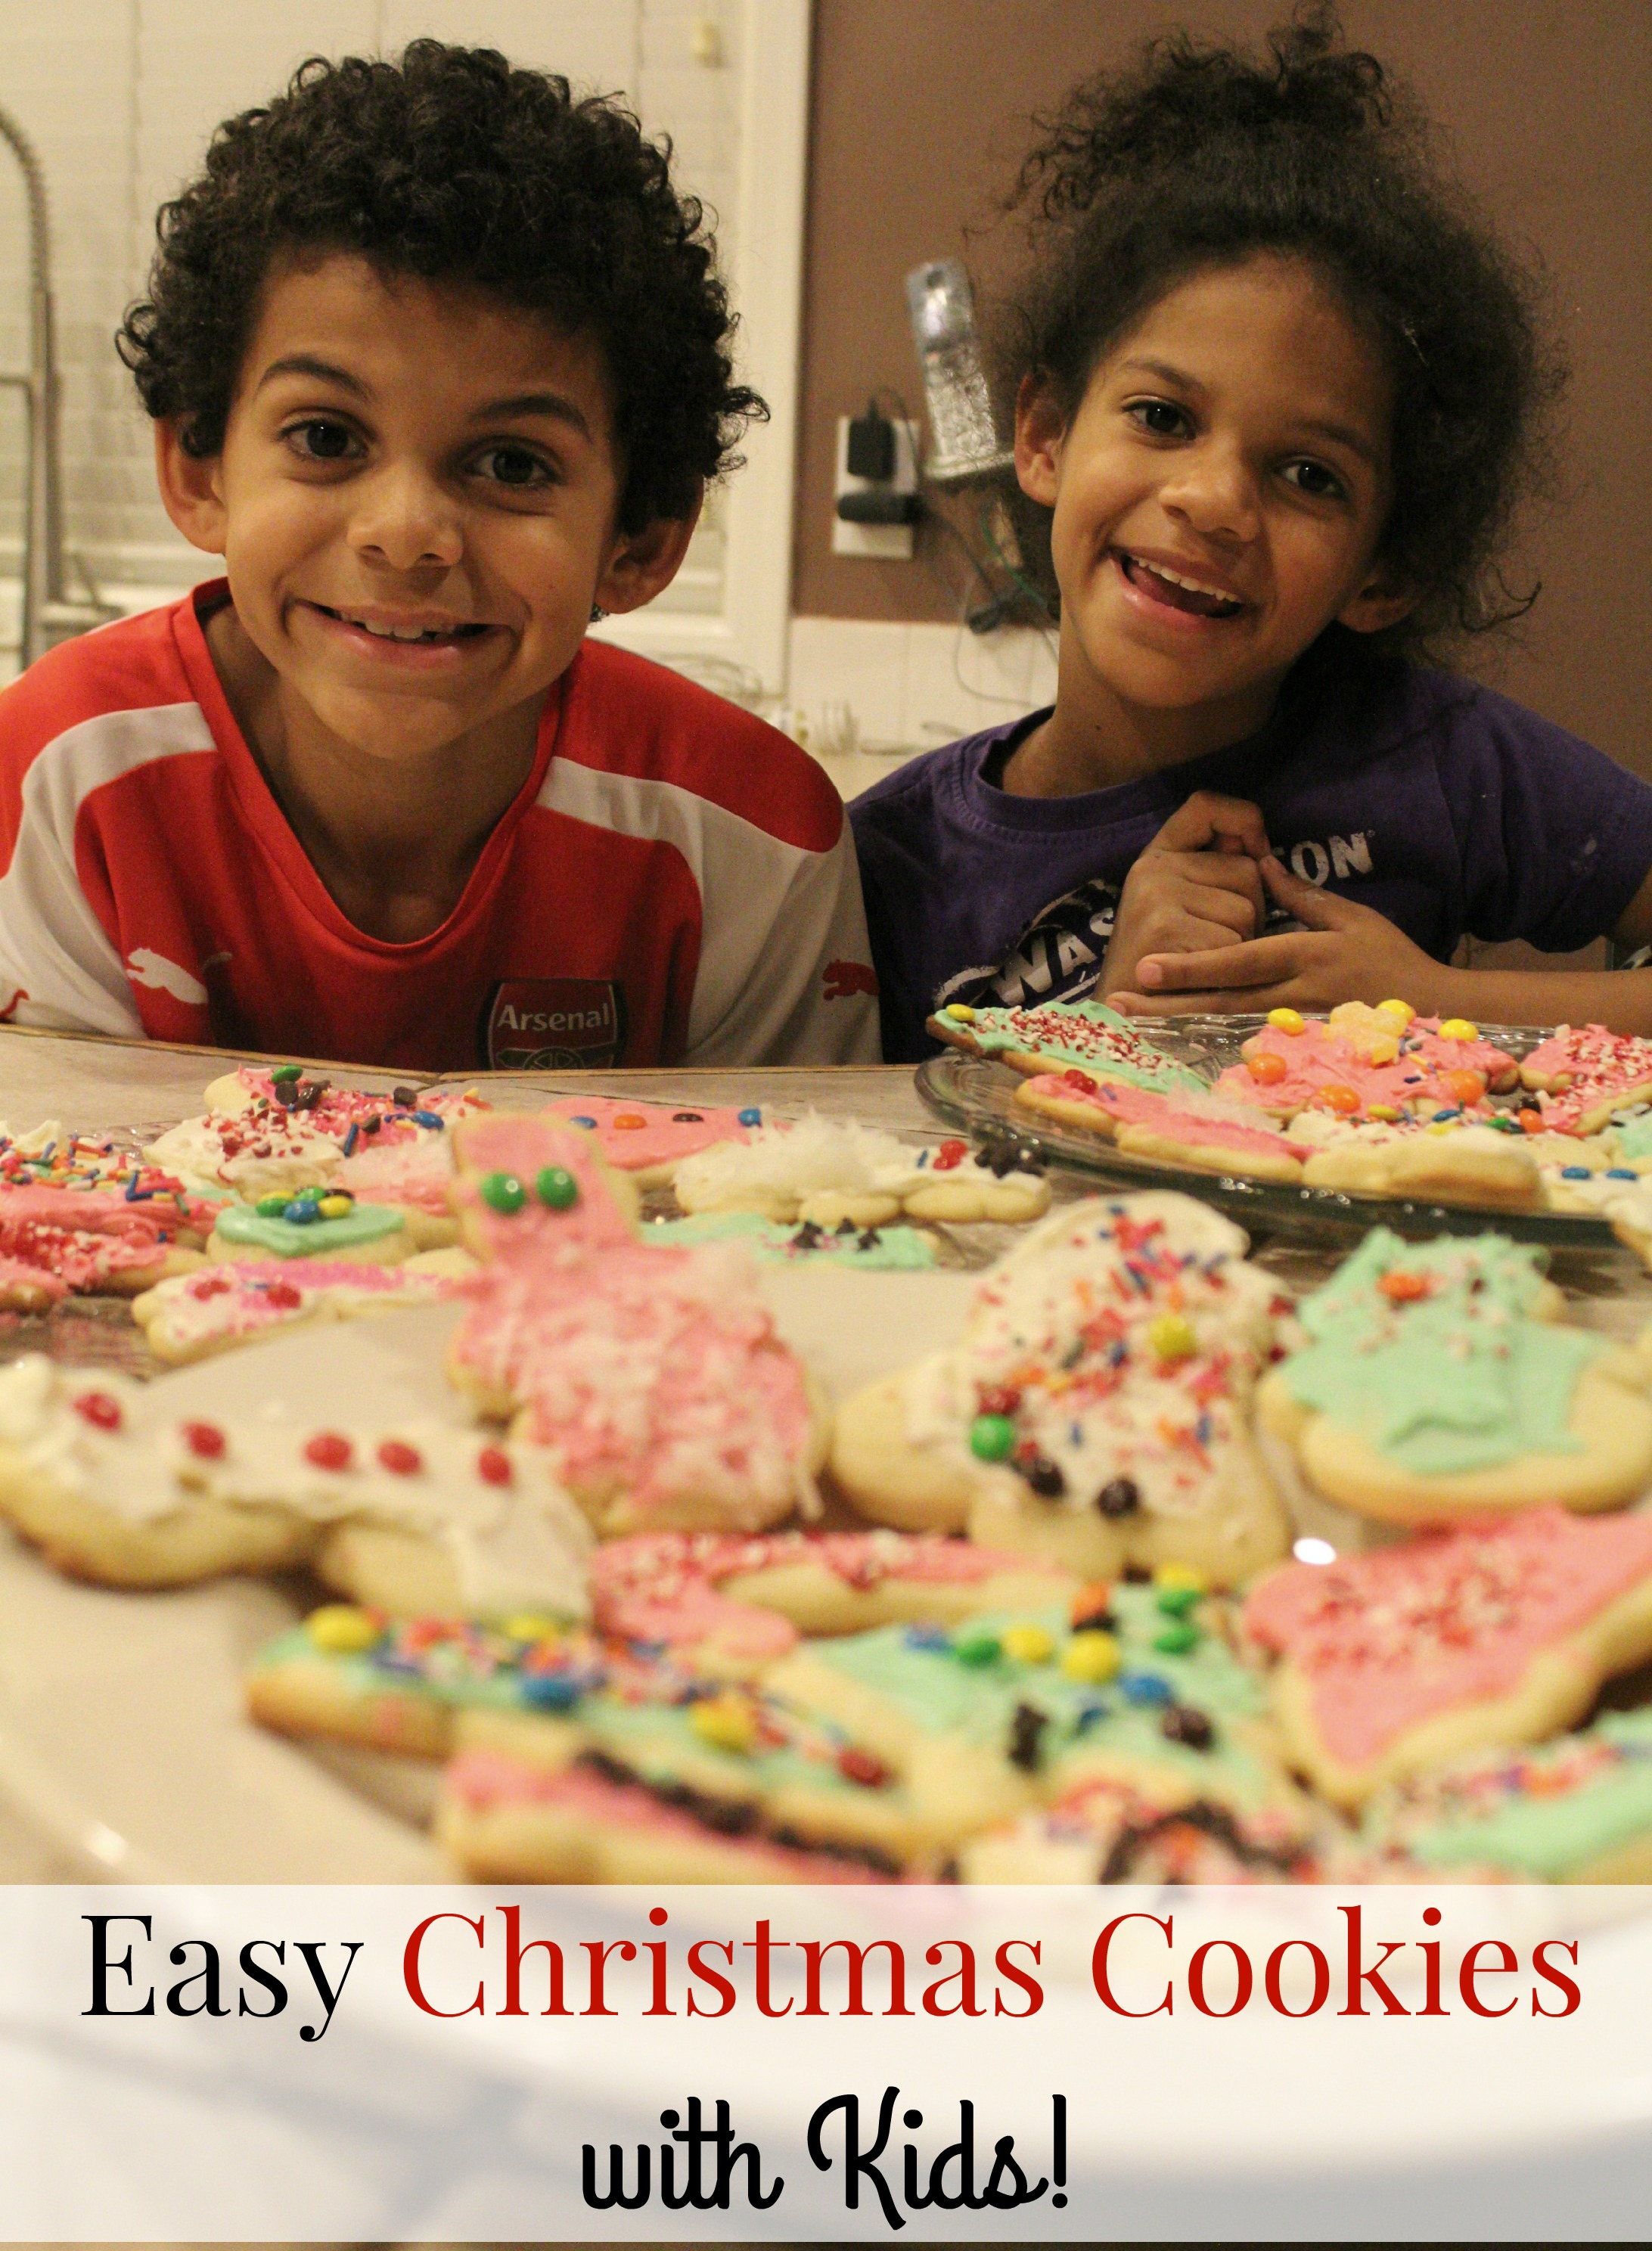 Easy Christmas Cookies with Kids